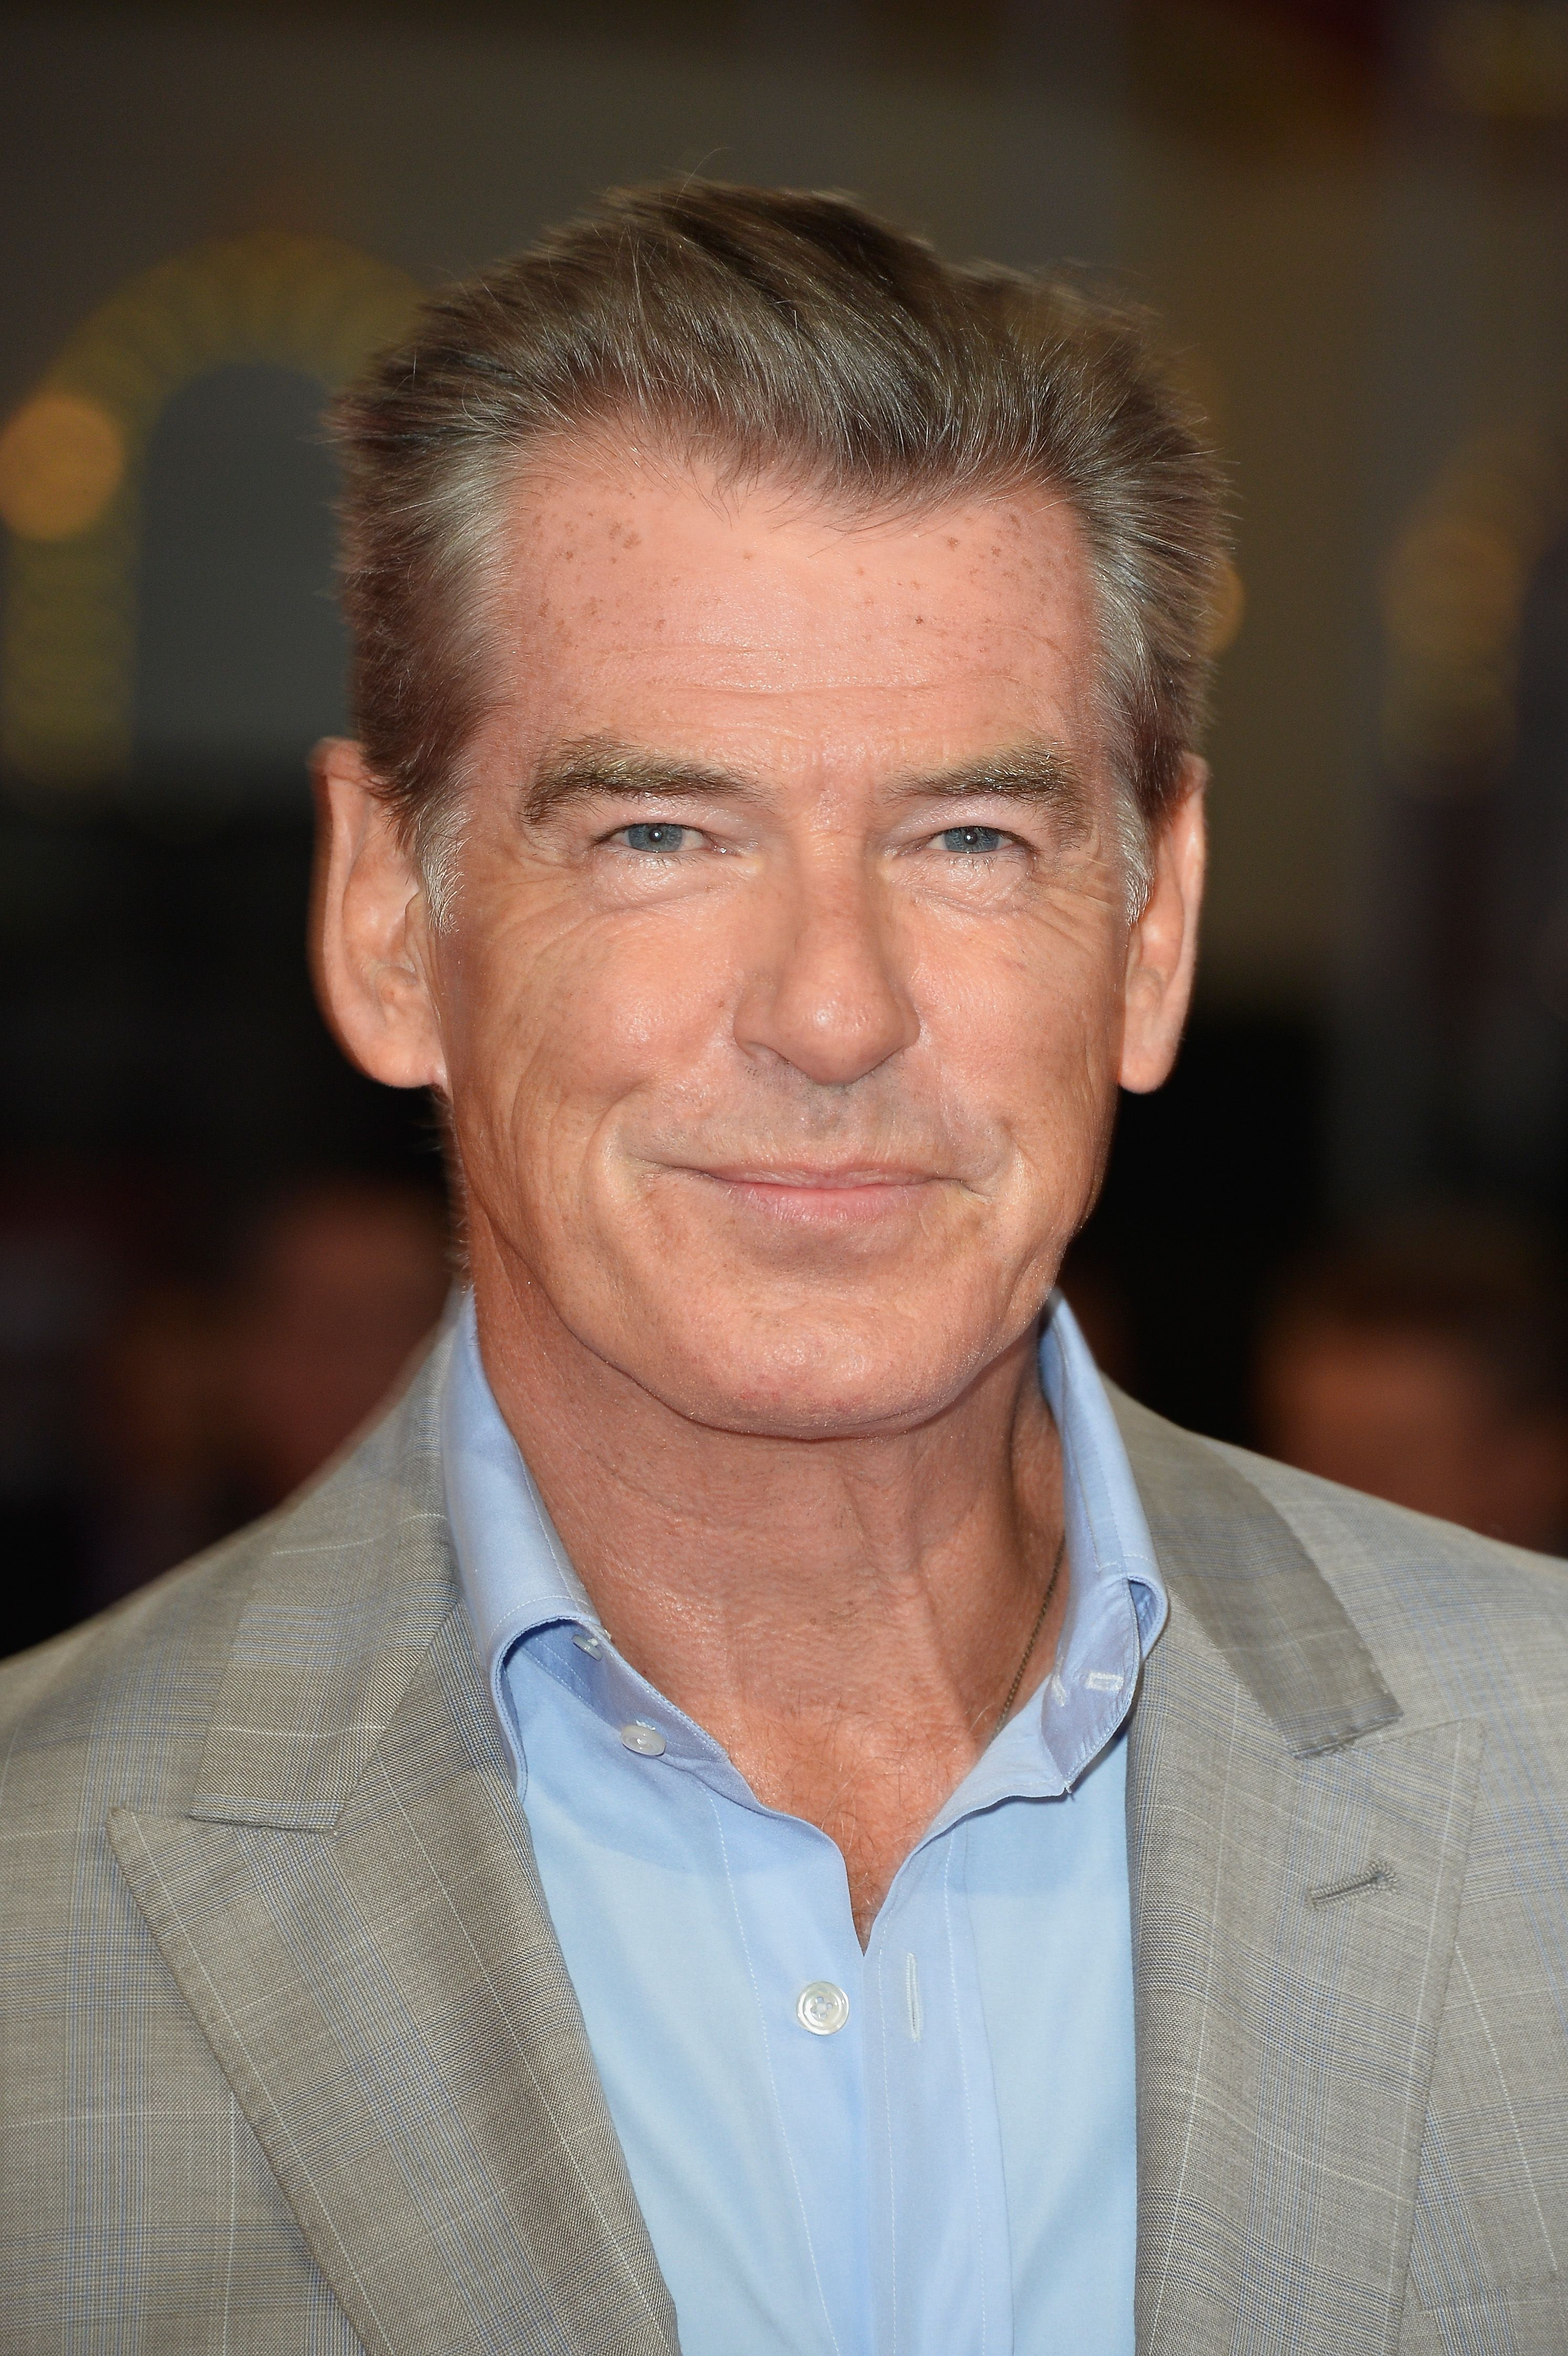 Pierce Brosnam during the 'Pasolini' premiere on September 11, 2014 in Deauville, France | Photo: Getty Images